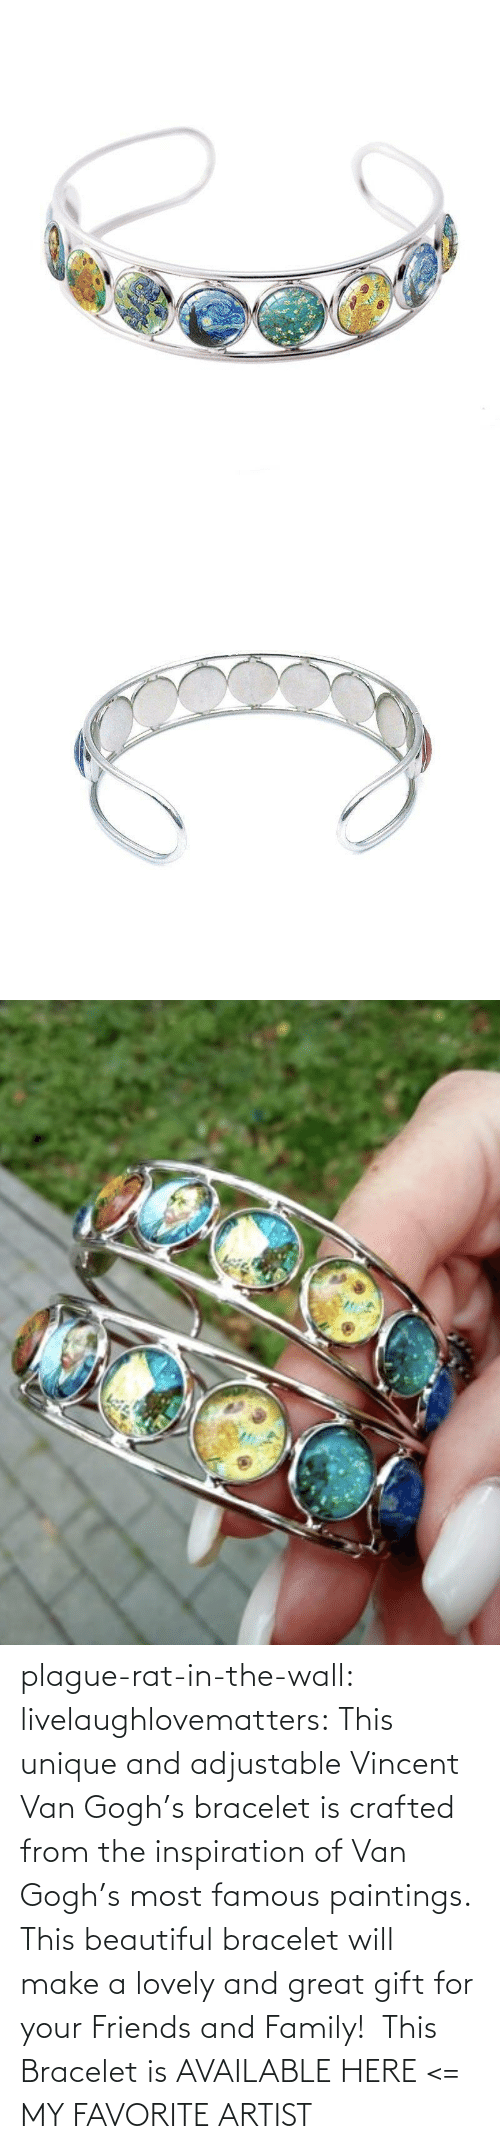 make a: plague-rat-in-the-wall:  livelaughlovematters: This unique and adjustableVincent Van Gogh's bracelet is crafted from the inspiration of Van Gogh's most famous paintings. This beautiful bracelet will make a lovely and great gift for your Friends and Family! This Bracelet is AVAILABLE HERE <=  MY FAVORITE ARTIST